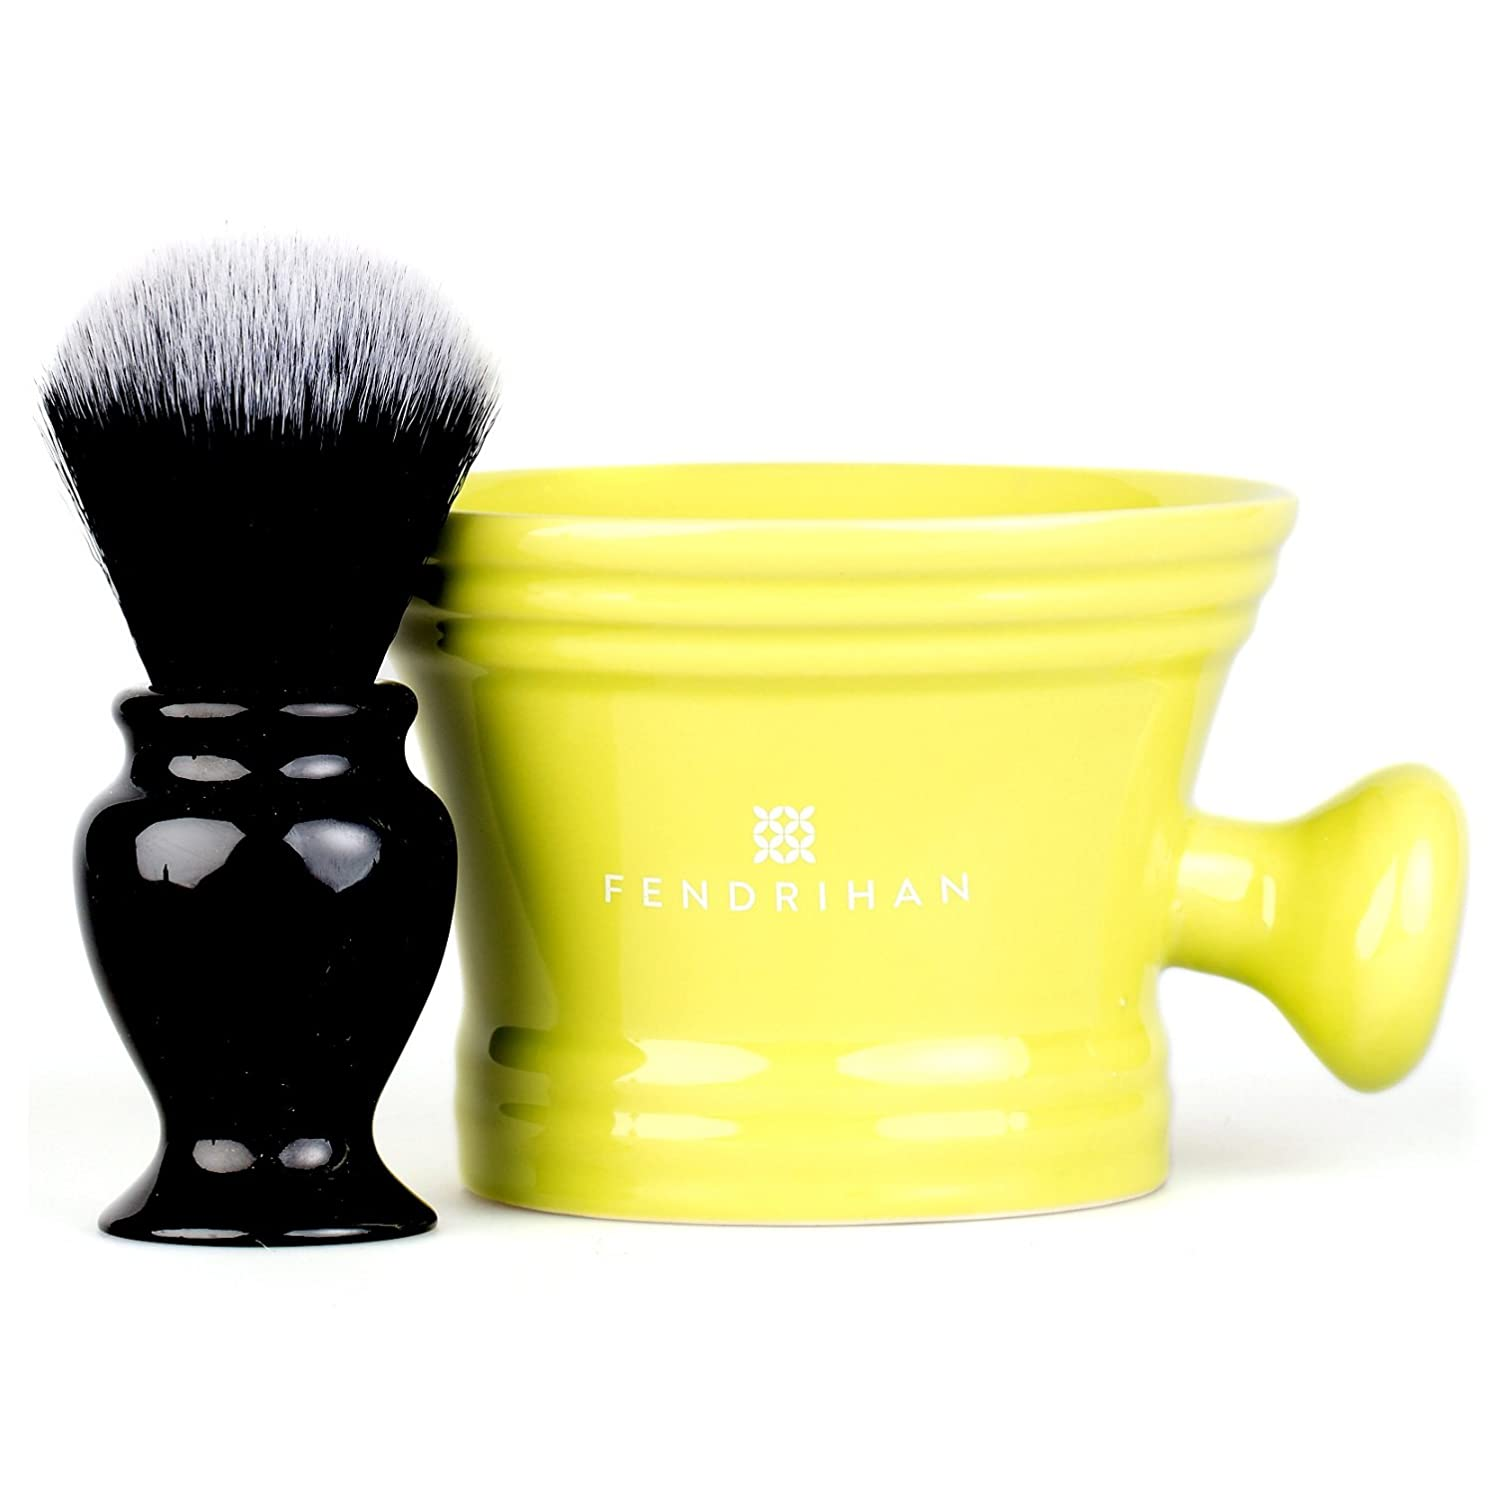 Fendrihan Synthetic Shaving Brush and Colorful Moderno Apothecary Shaving Mug Kit, The Perfect Men's Wet Shave Set (Black and White, Lime)